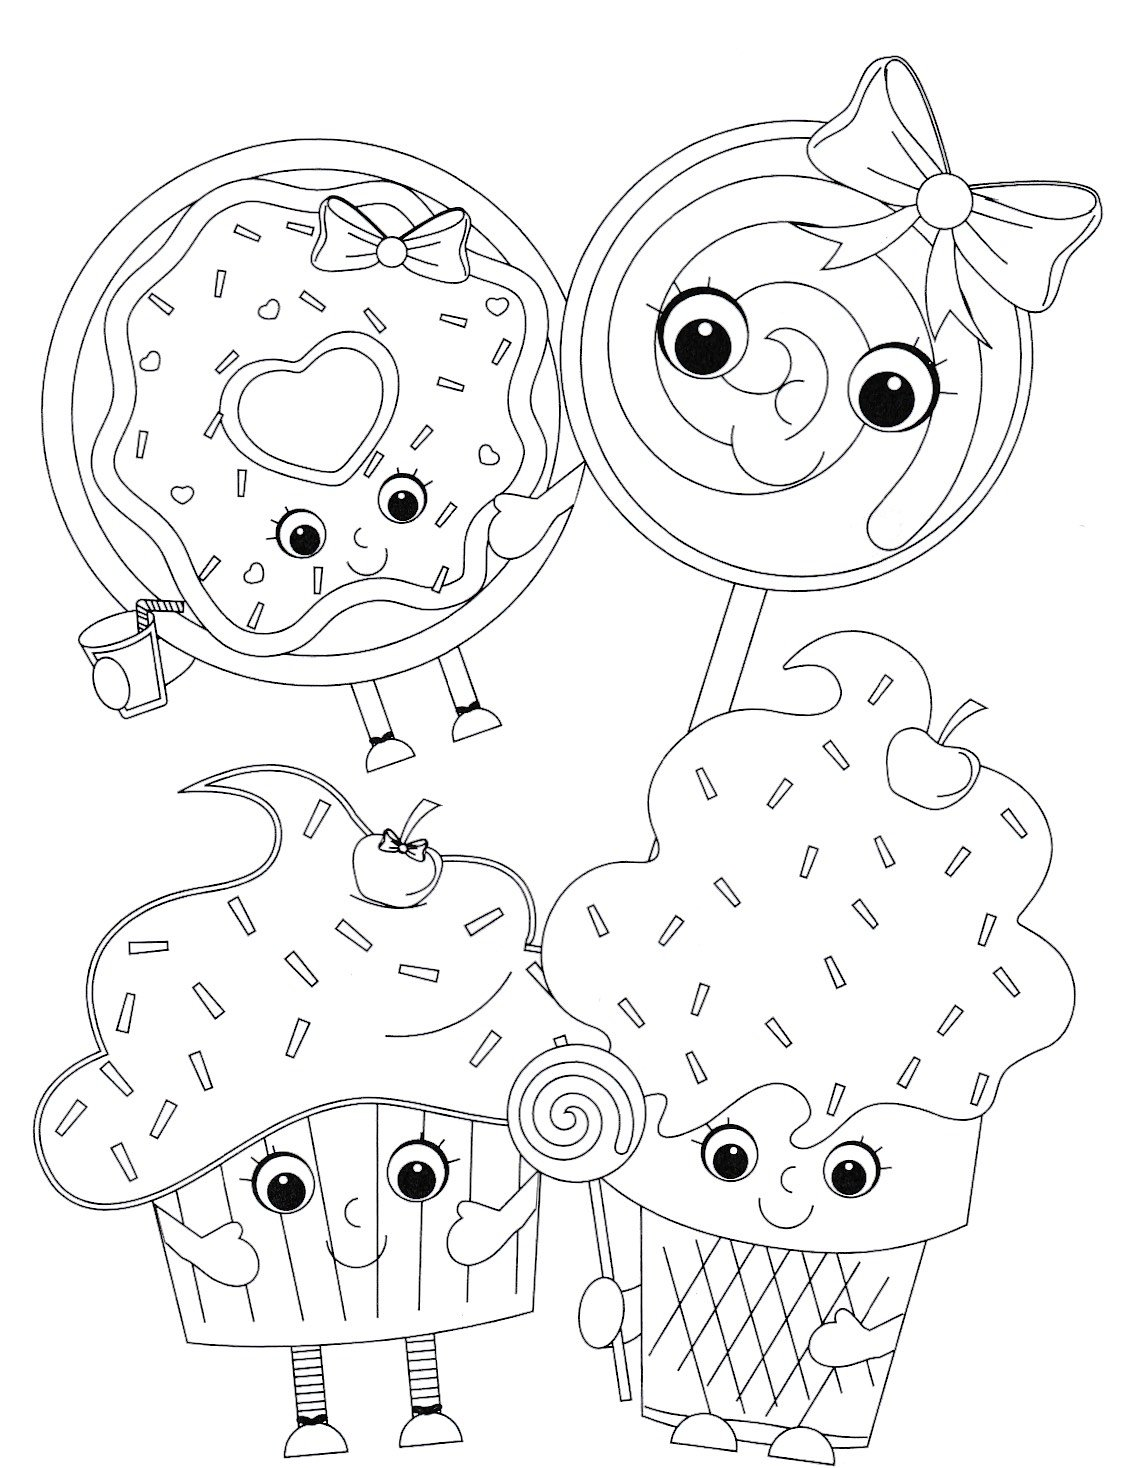 Valentines Emoticon Coloring Pages and Pencils, set of 48 pieces Party Favors by Custom Variety (Image #6)